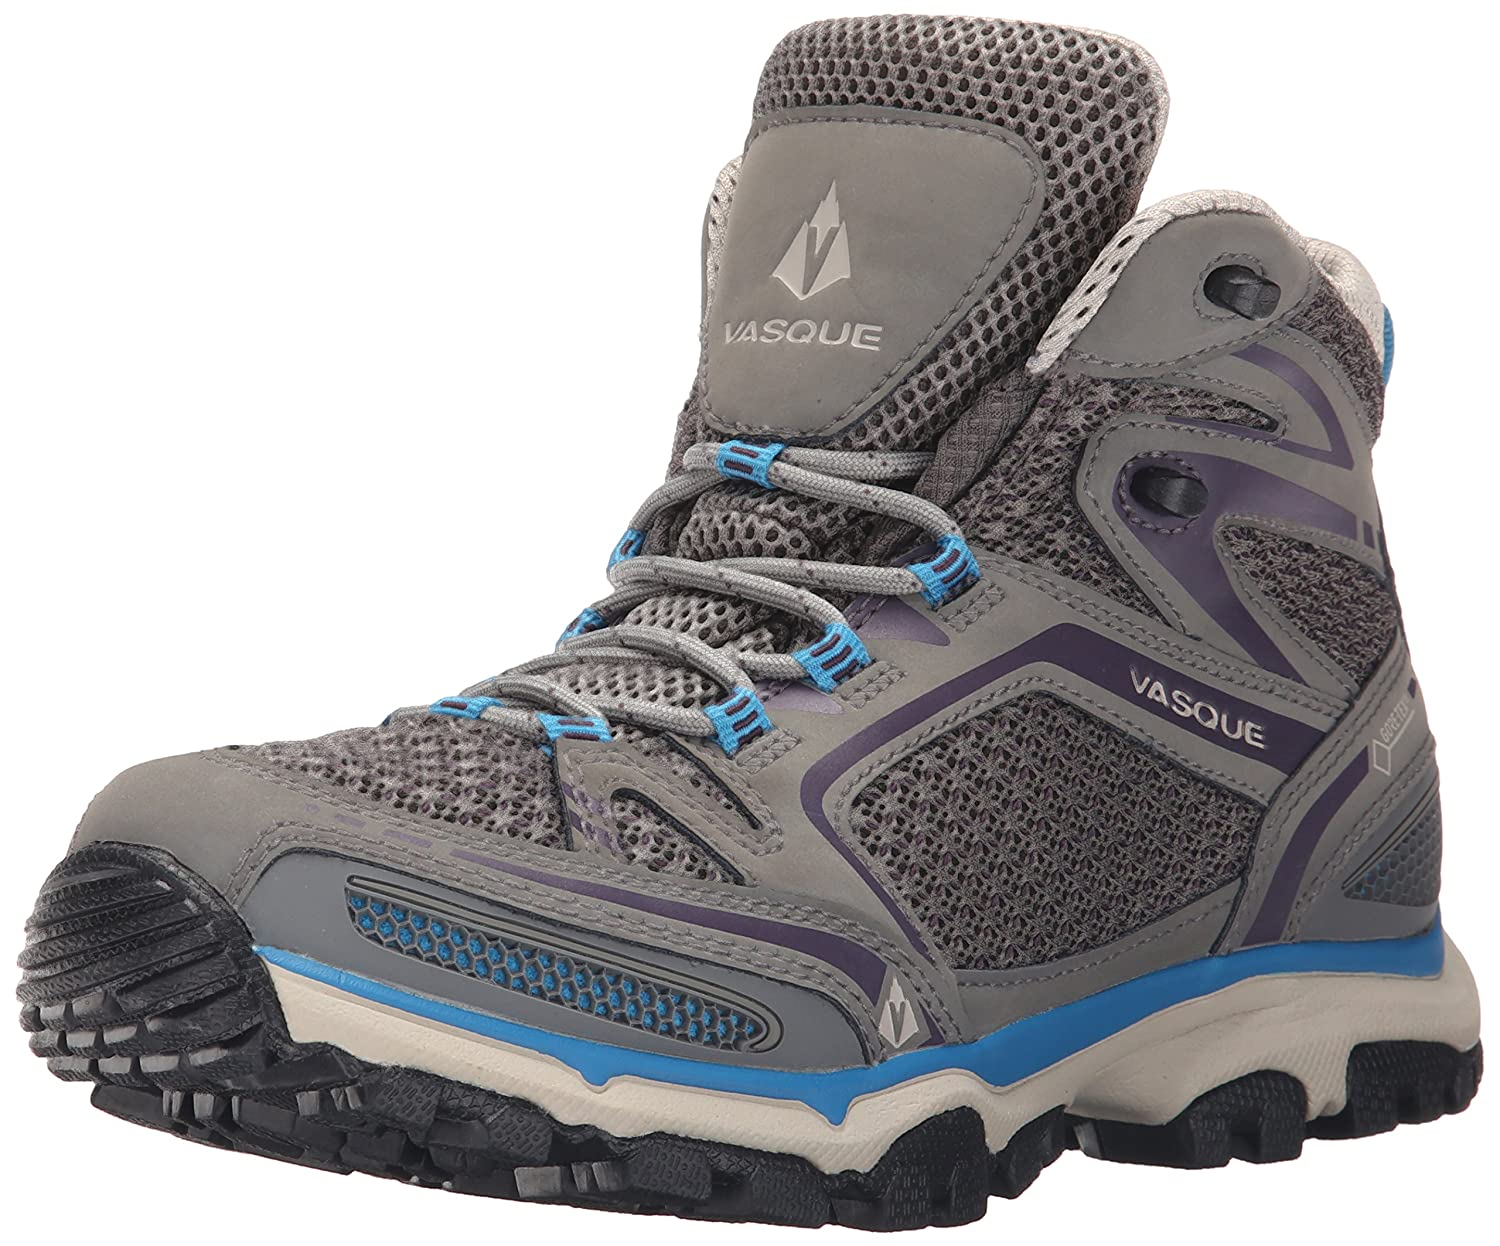 Vasque Women's Inhaler II Gore-Tex Hiking US|Moon Boot B00ZUY5FHY 11 B(M) US|Moon Hiking Mist/Plum e3fc74